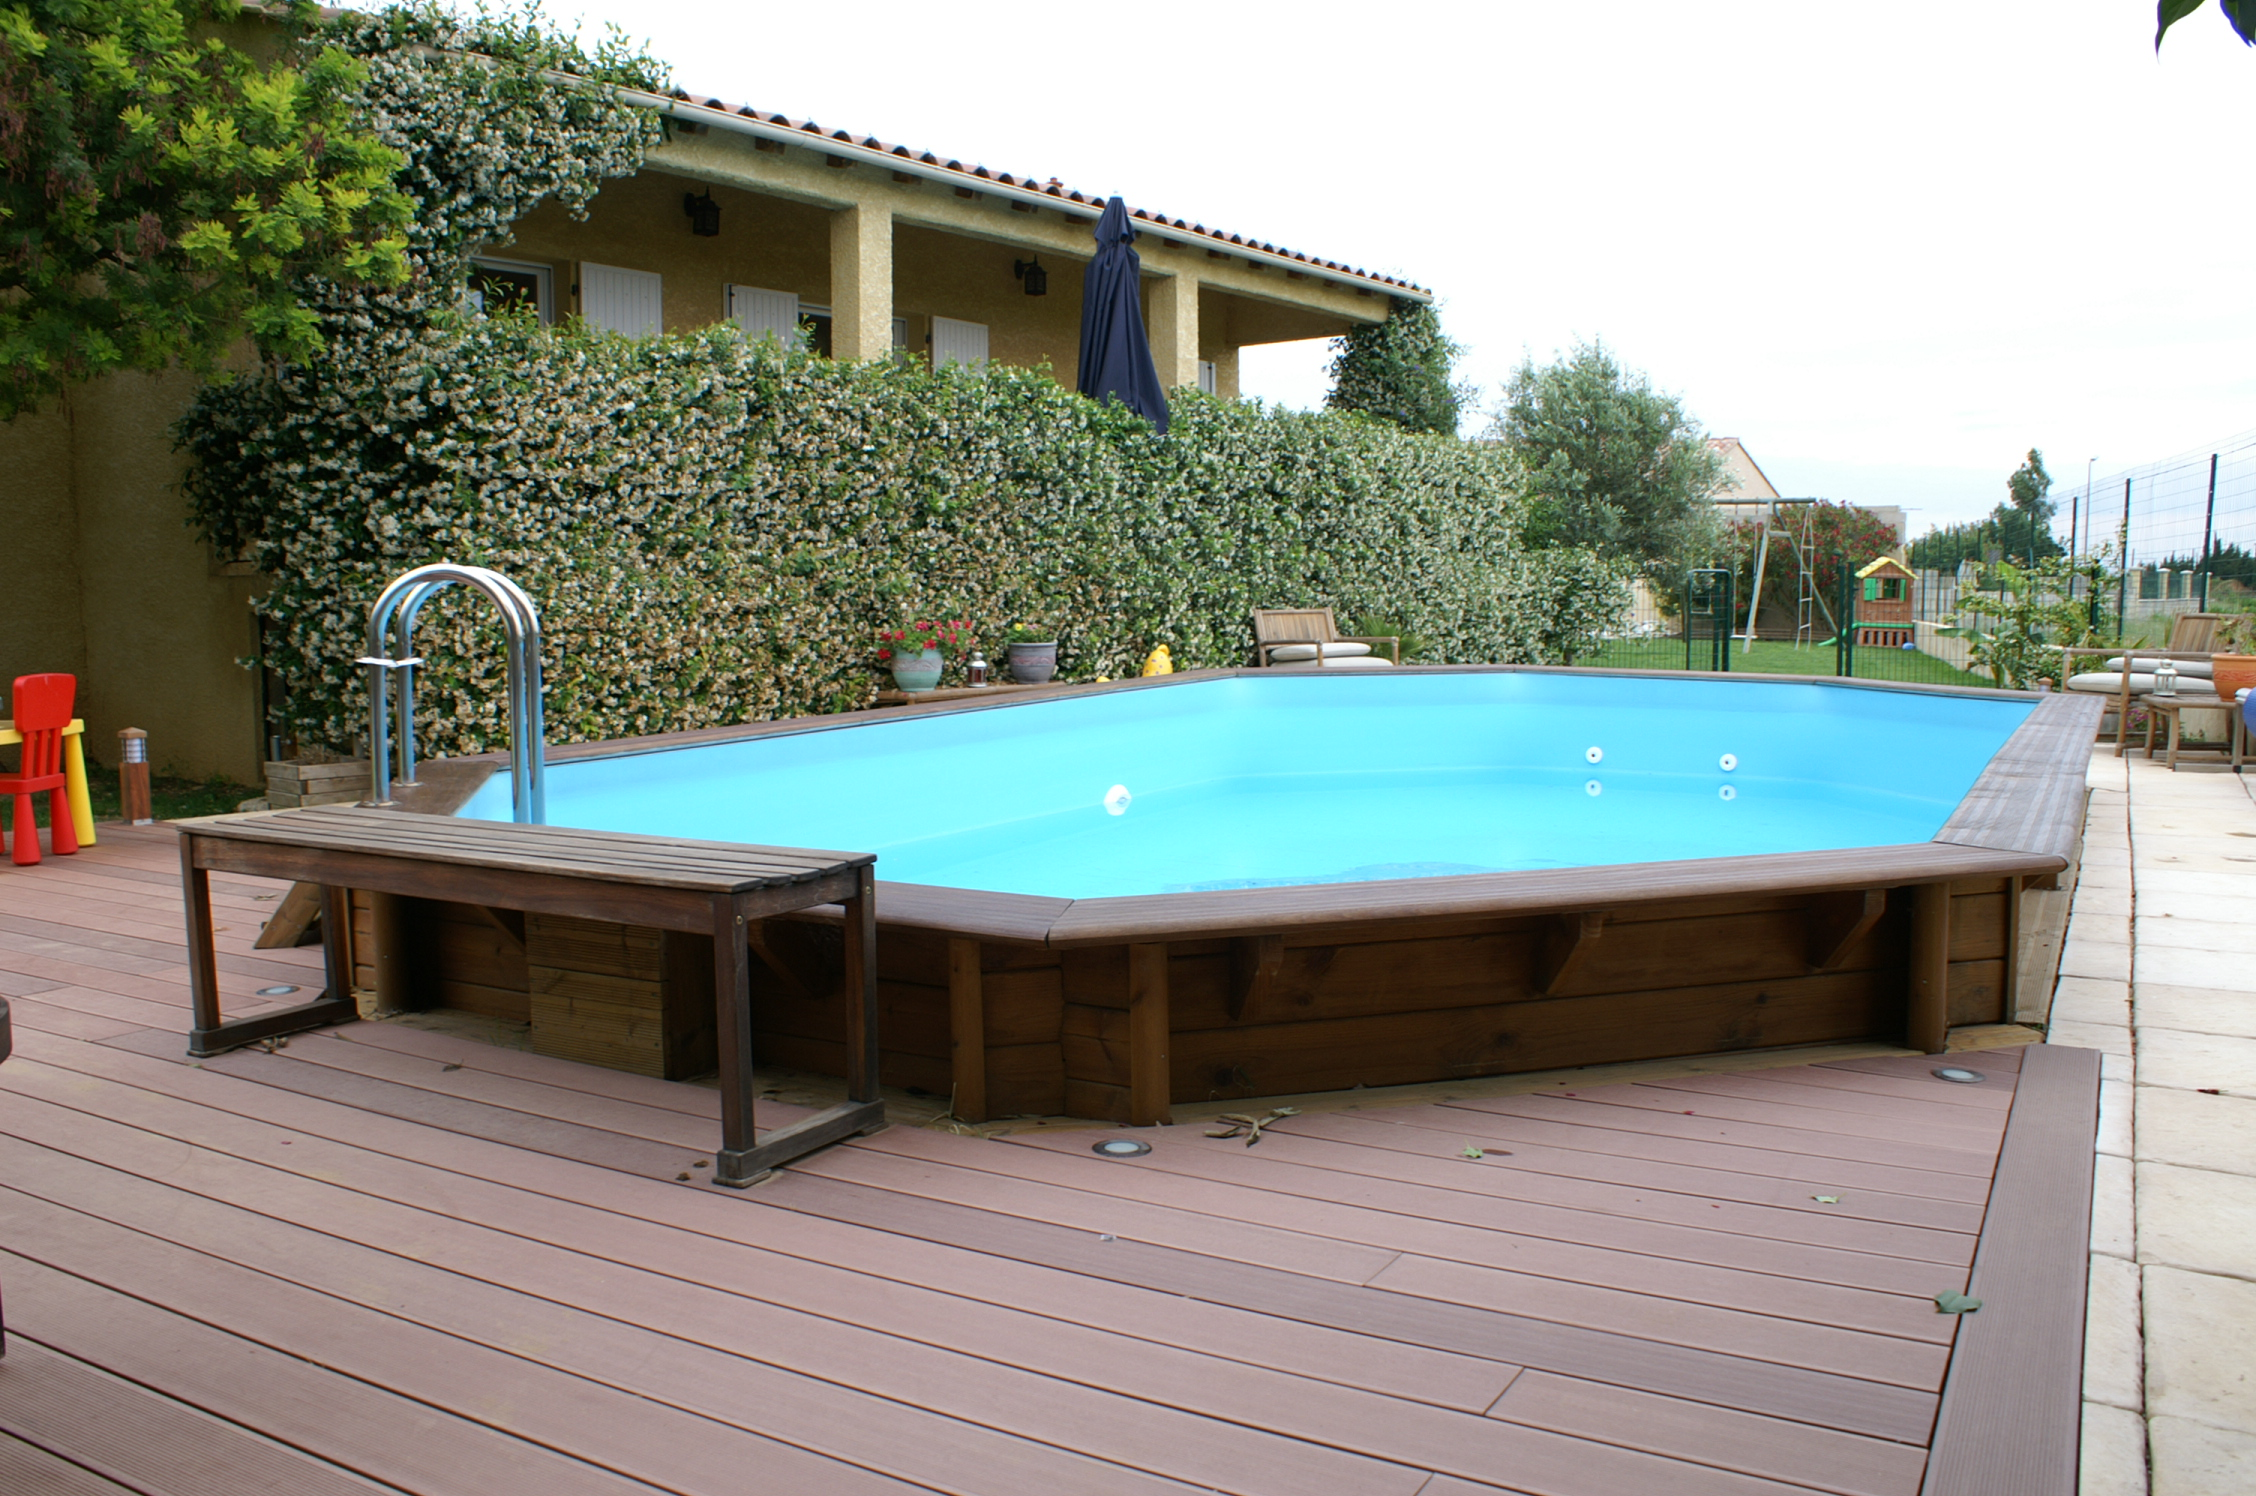 Construction piscines nimes gepad piscines et spa 30000 for Piscine hexagonale hors sol